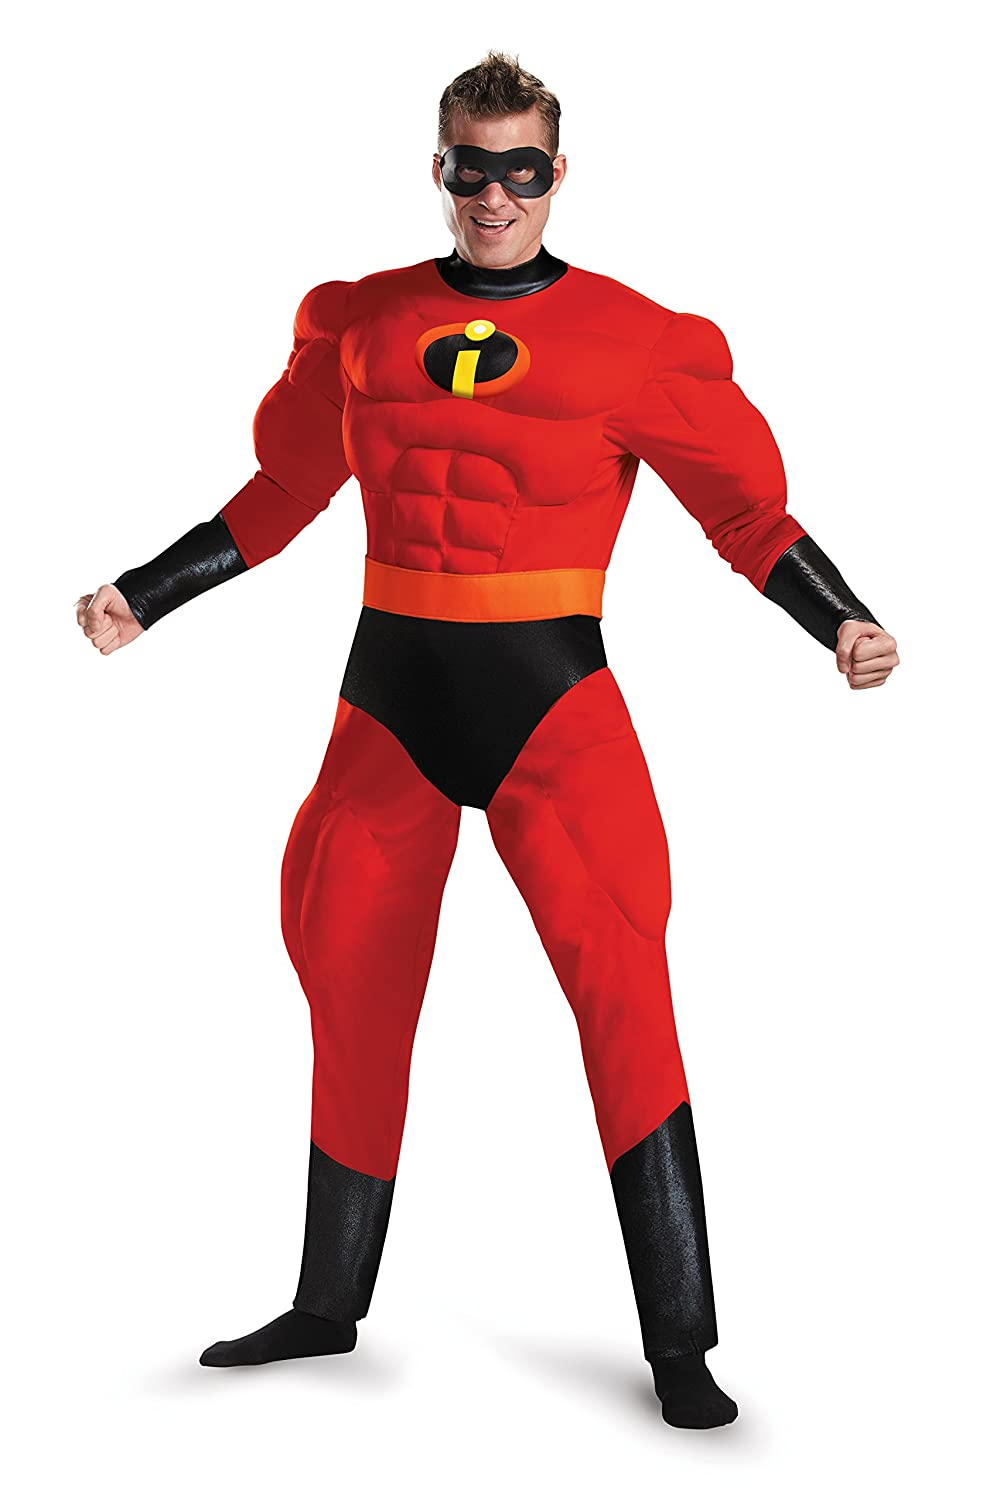 Disguise Mr. Incredible Deluxe Muscle Adult Costume